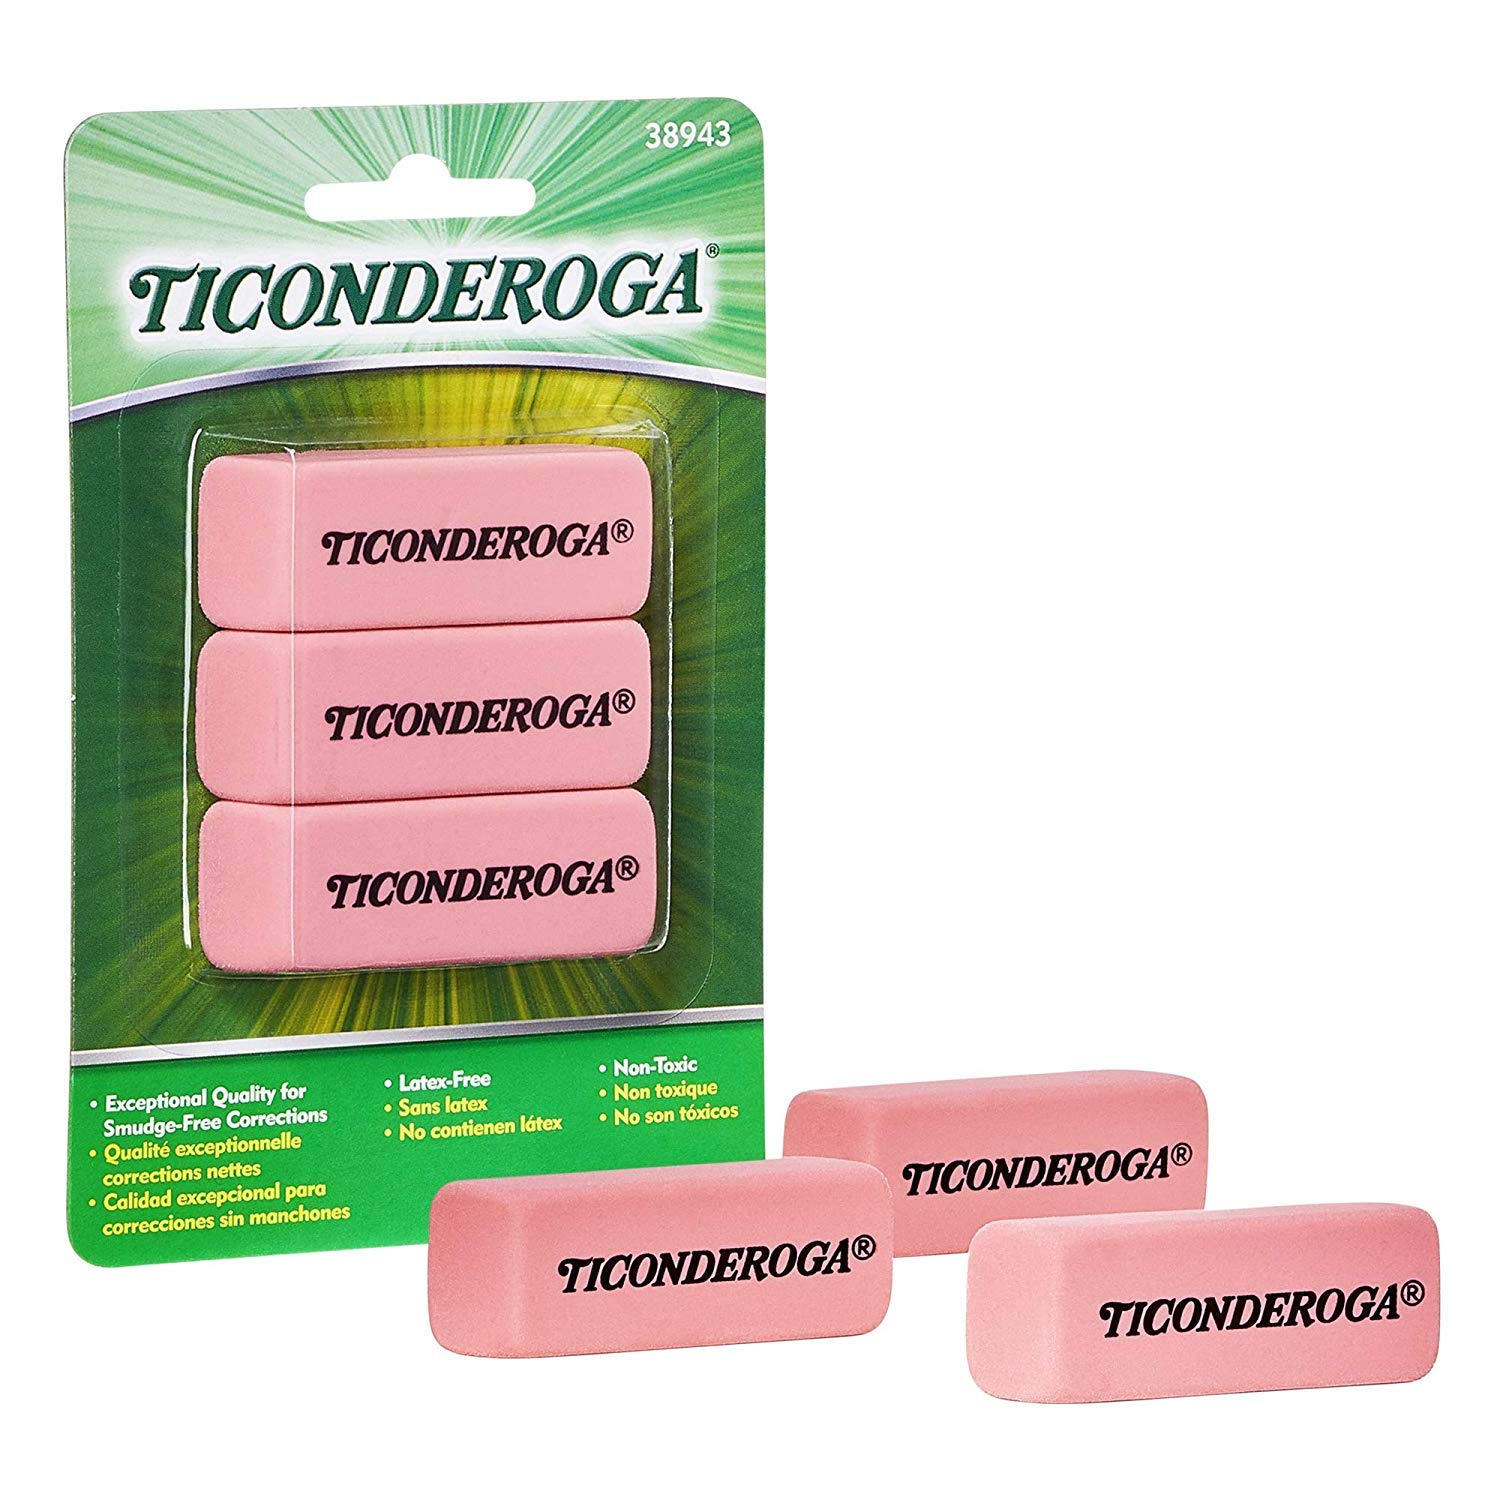 TICONDEROGA Pink Carnation Erasers, Wedge, Medium, Pink, 2-5/16 x 13/16 x 7/17 Inches, 28 Count (28 Count)